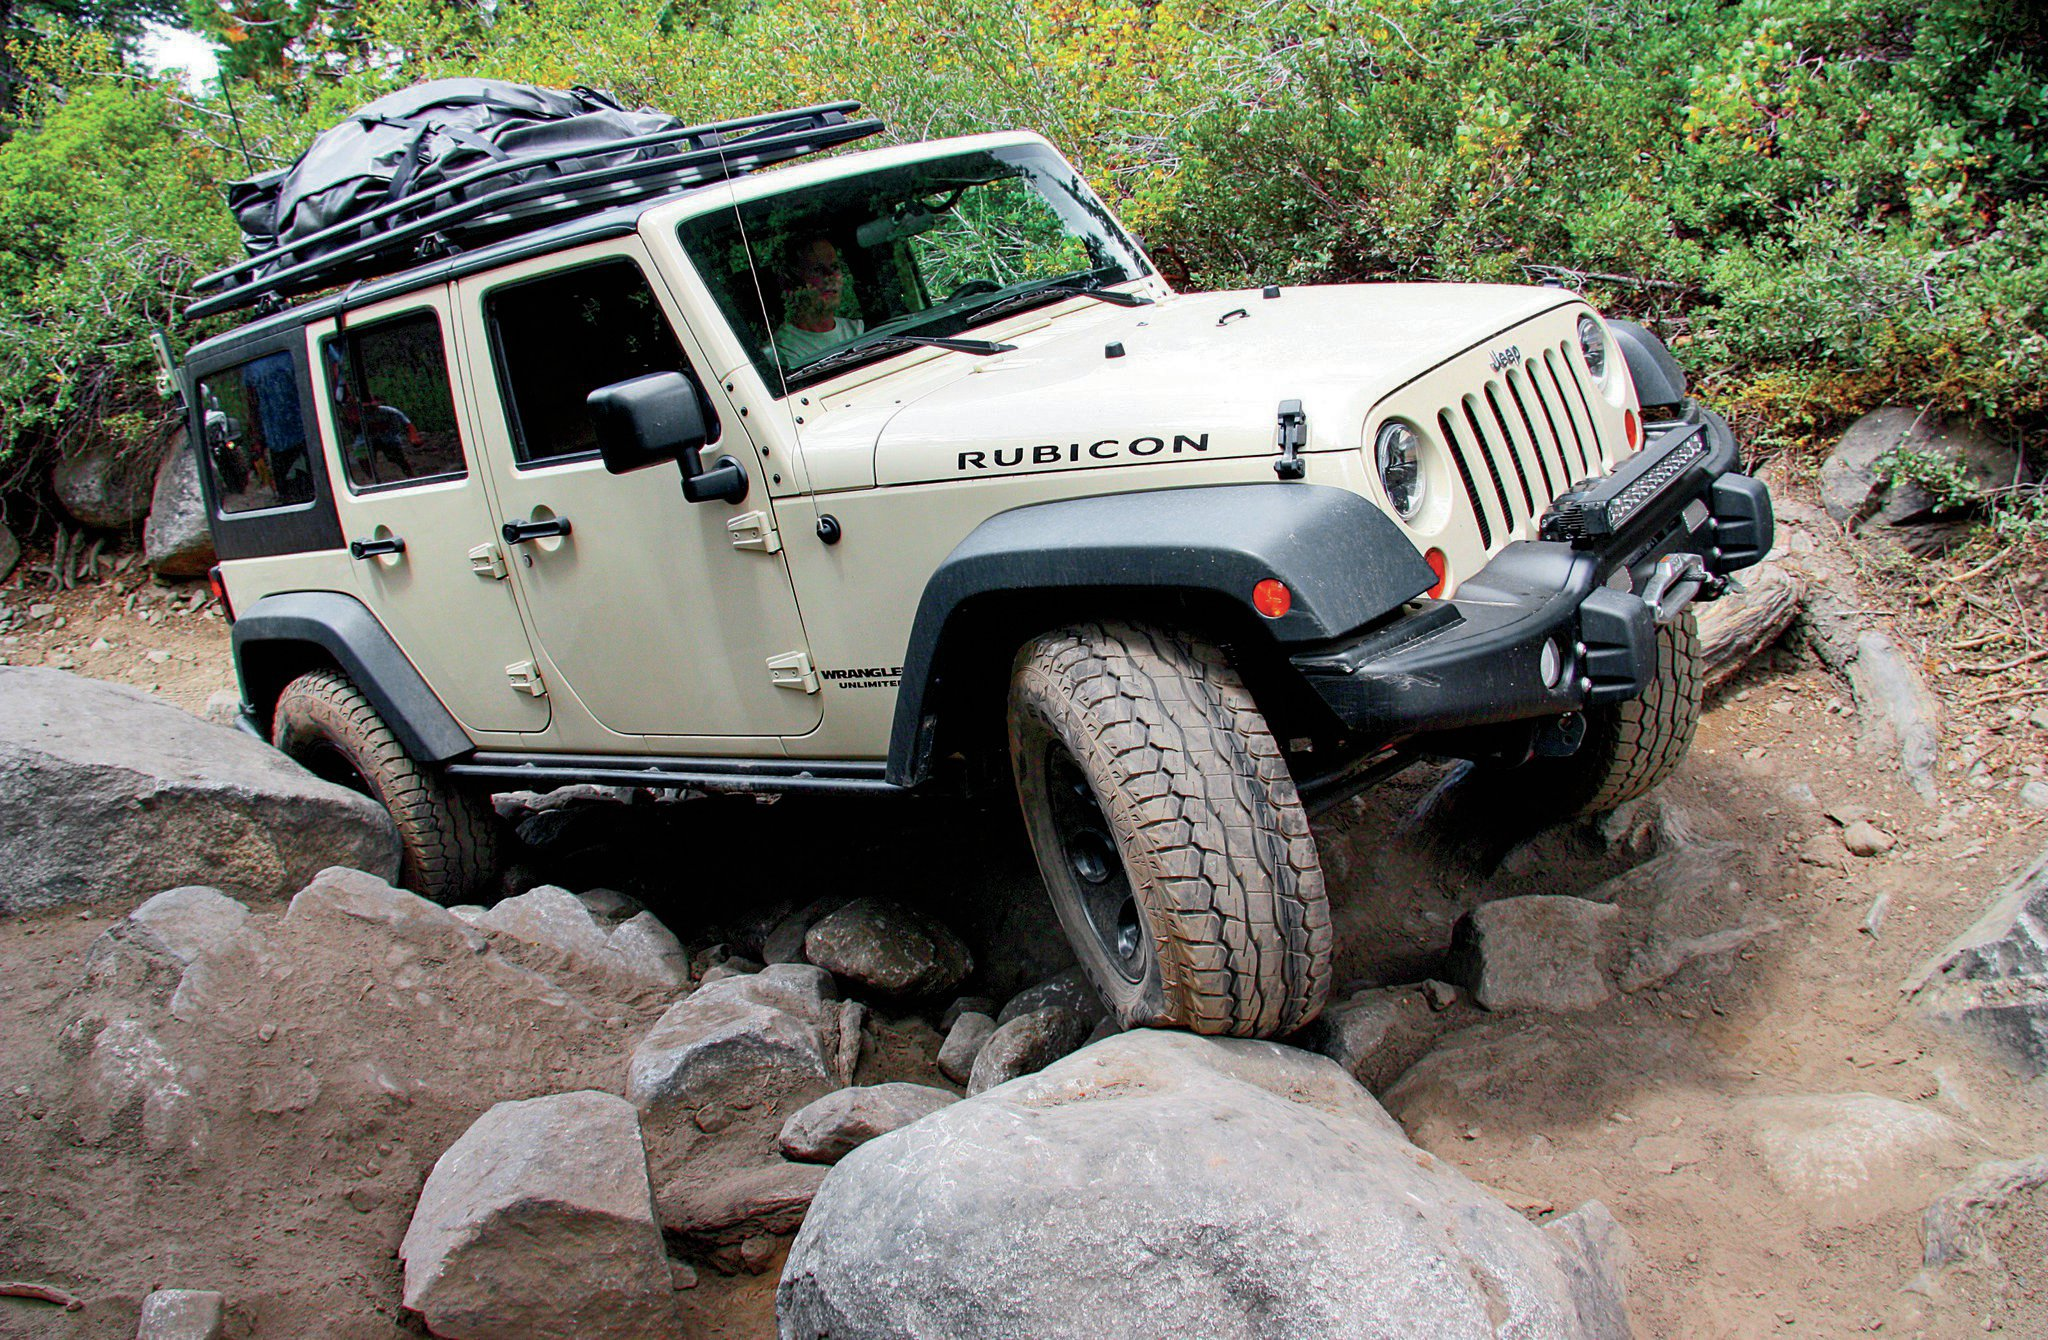 2012 Jeep Wrangler Unlimited Rubicon front three quarter